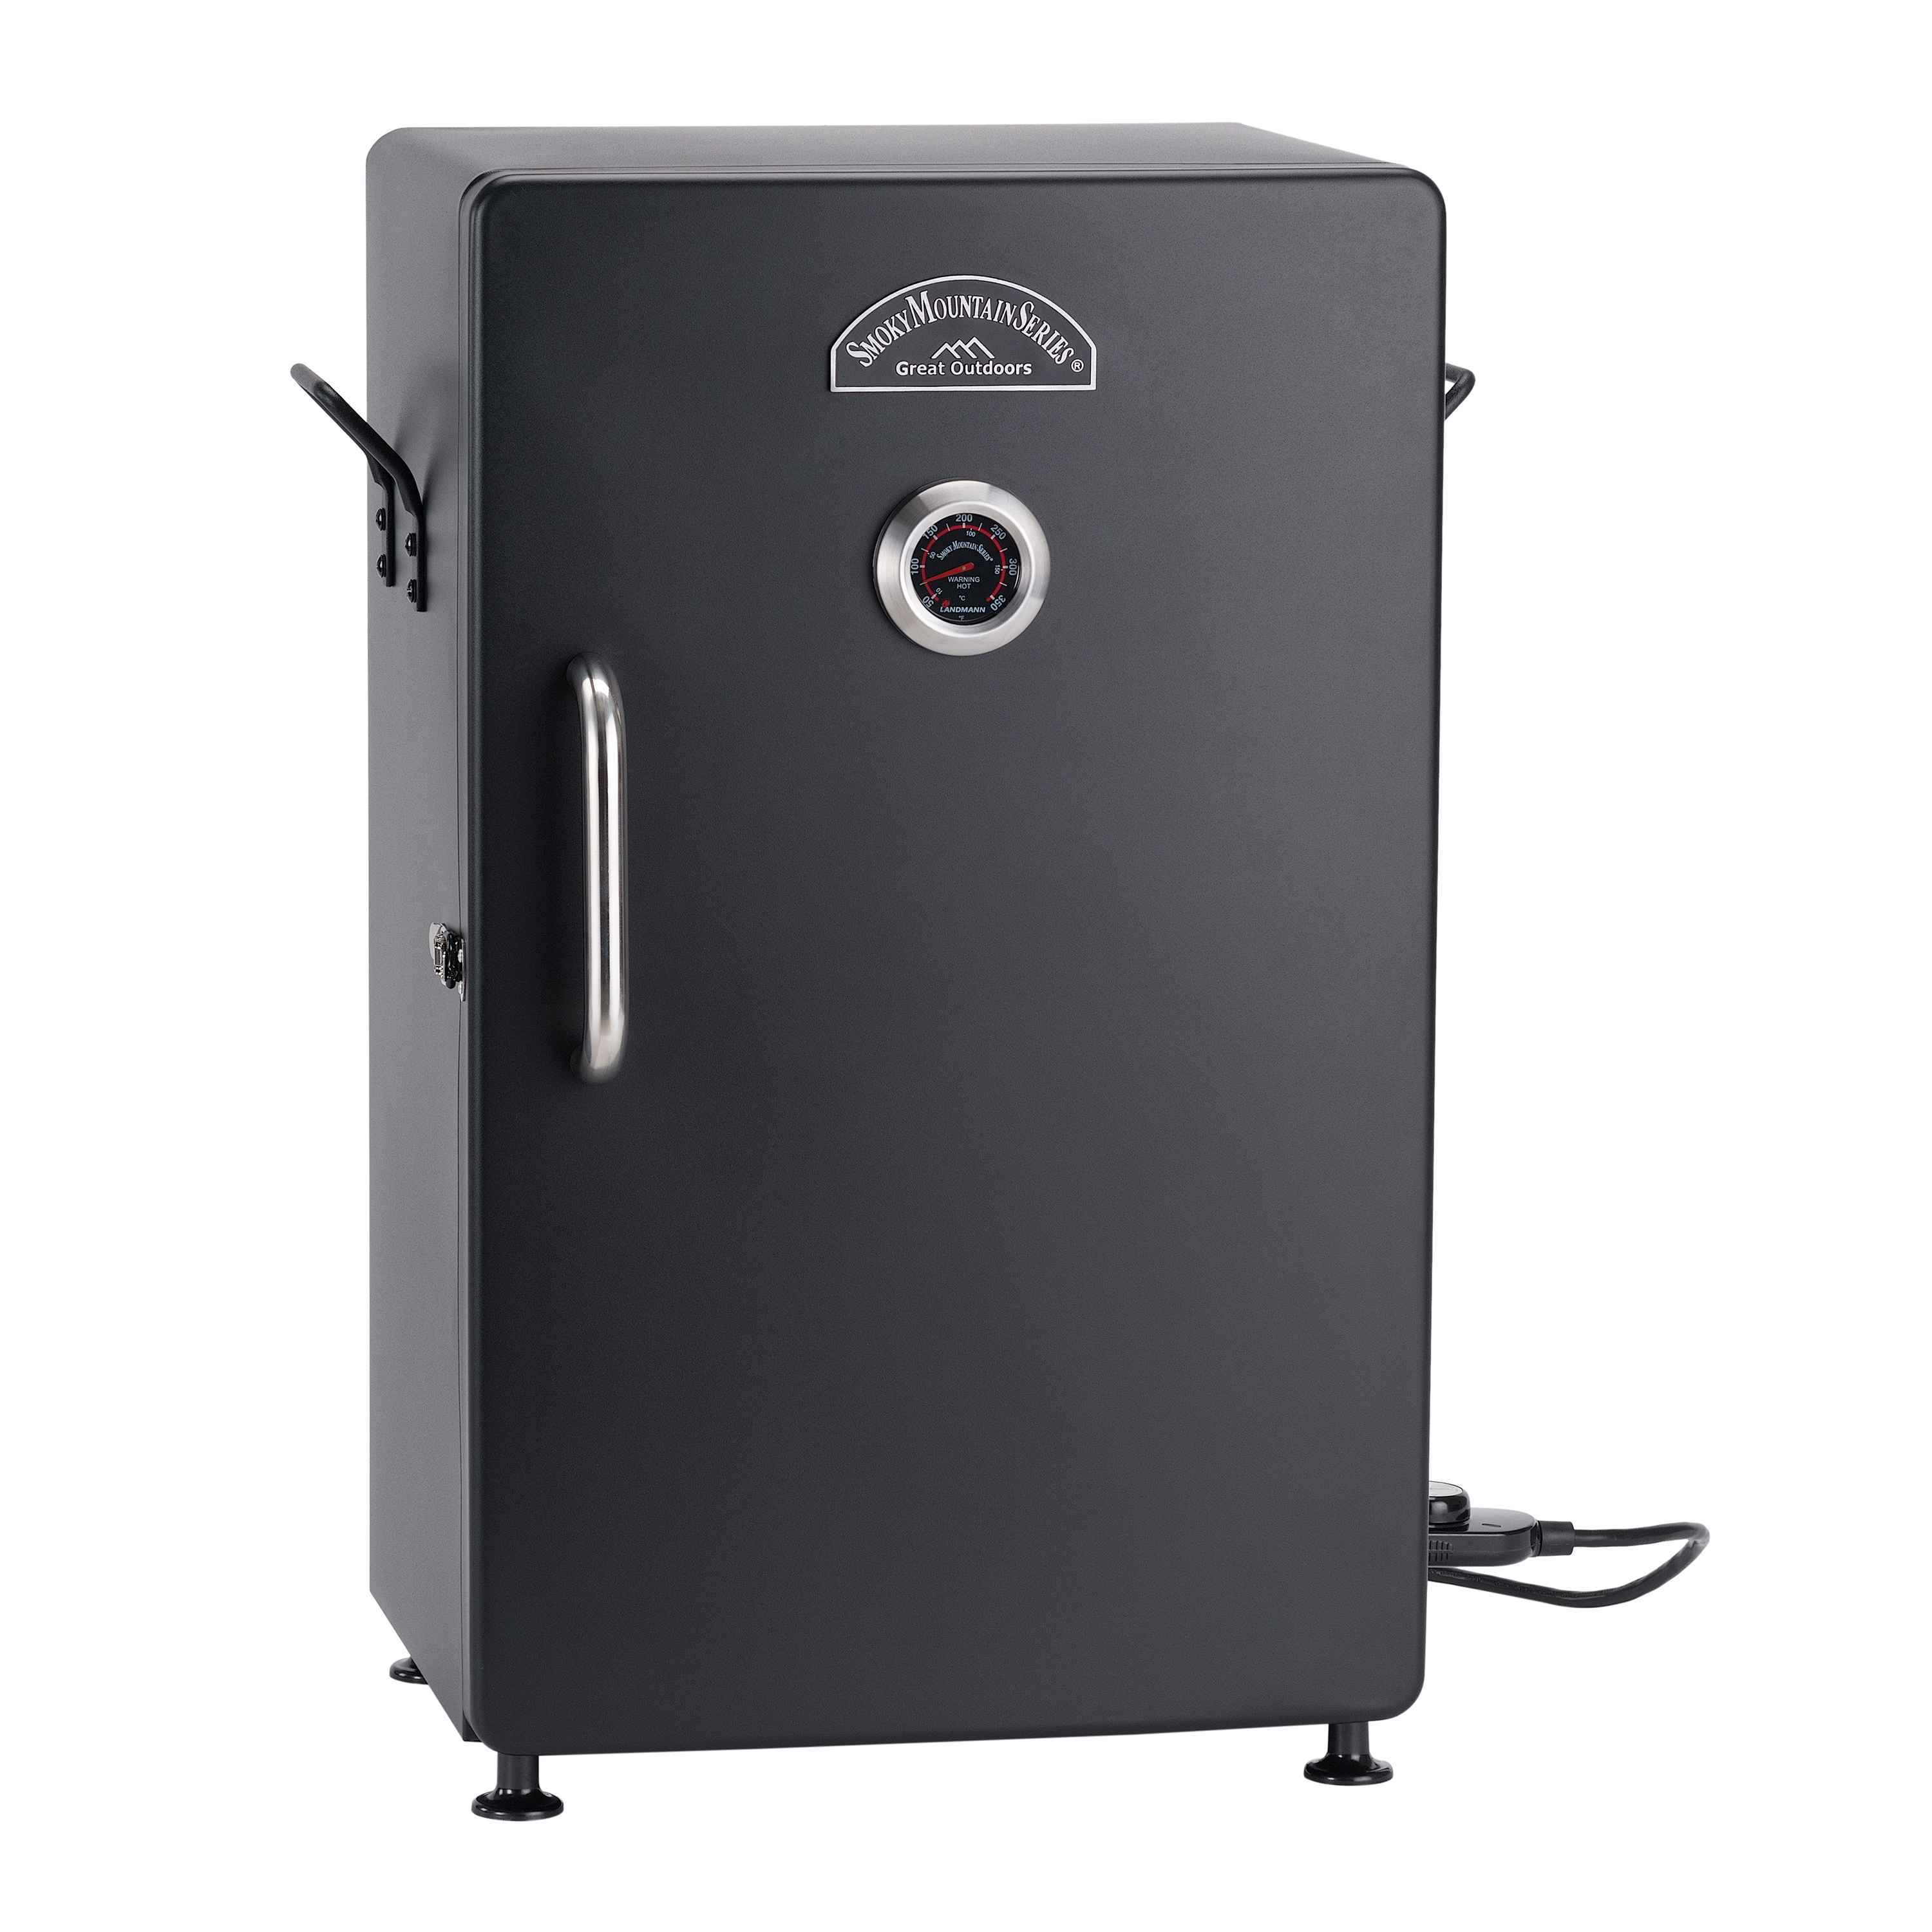 Landmann Smoky Mountain Series 26 Inch Electric Smoker